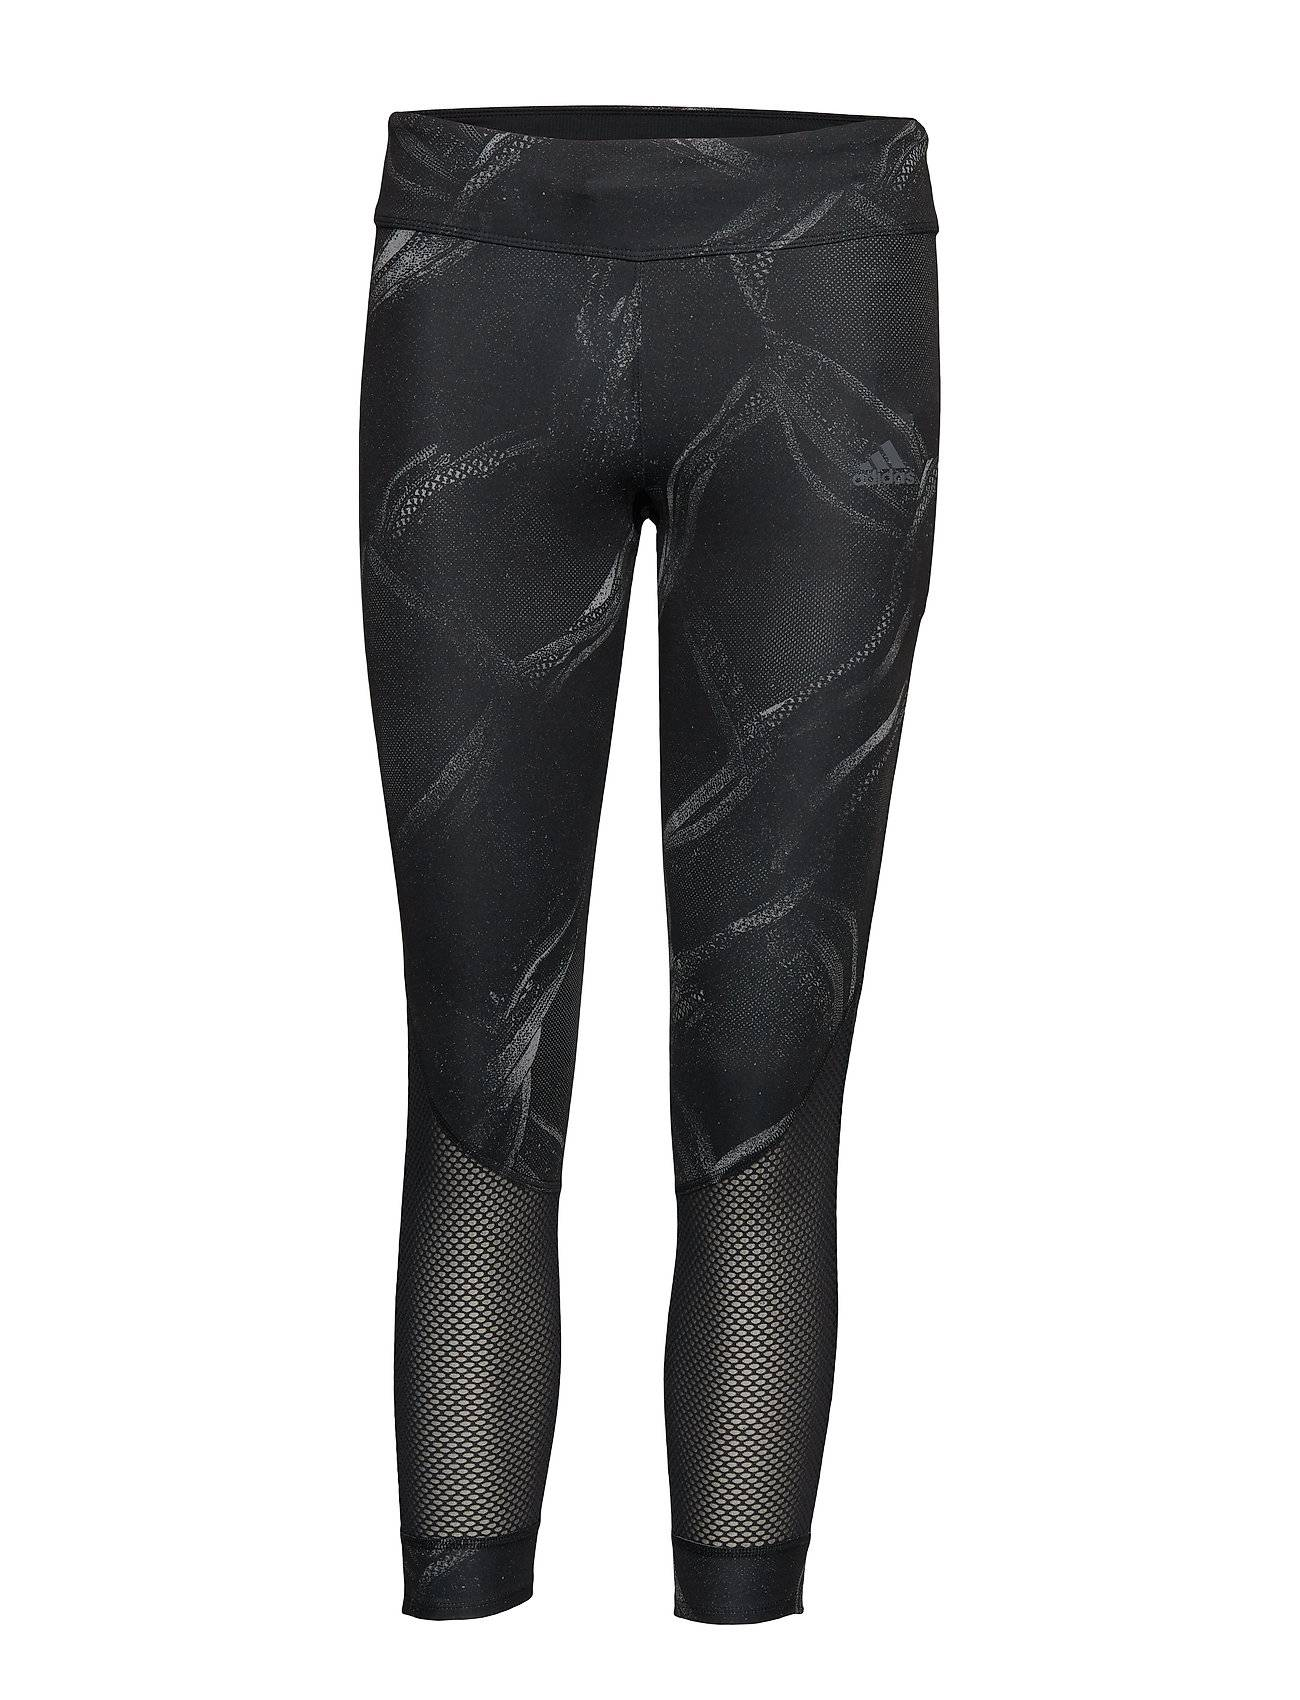 Image of adidas Performance Own The Run Tgt Running/training Tights Musta Adidas Performance